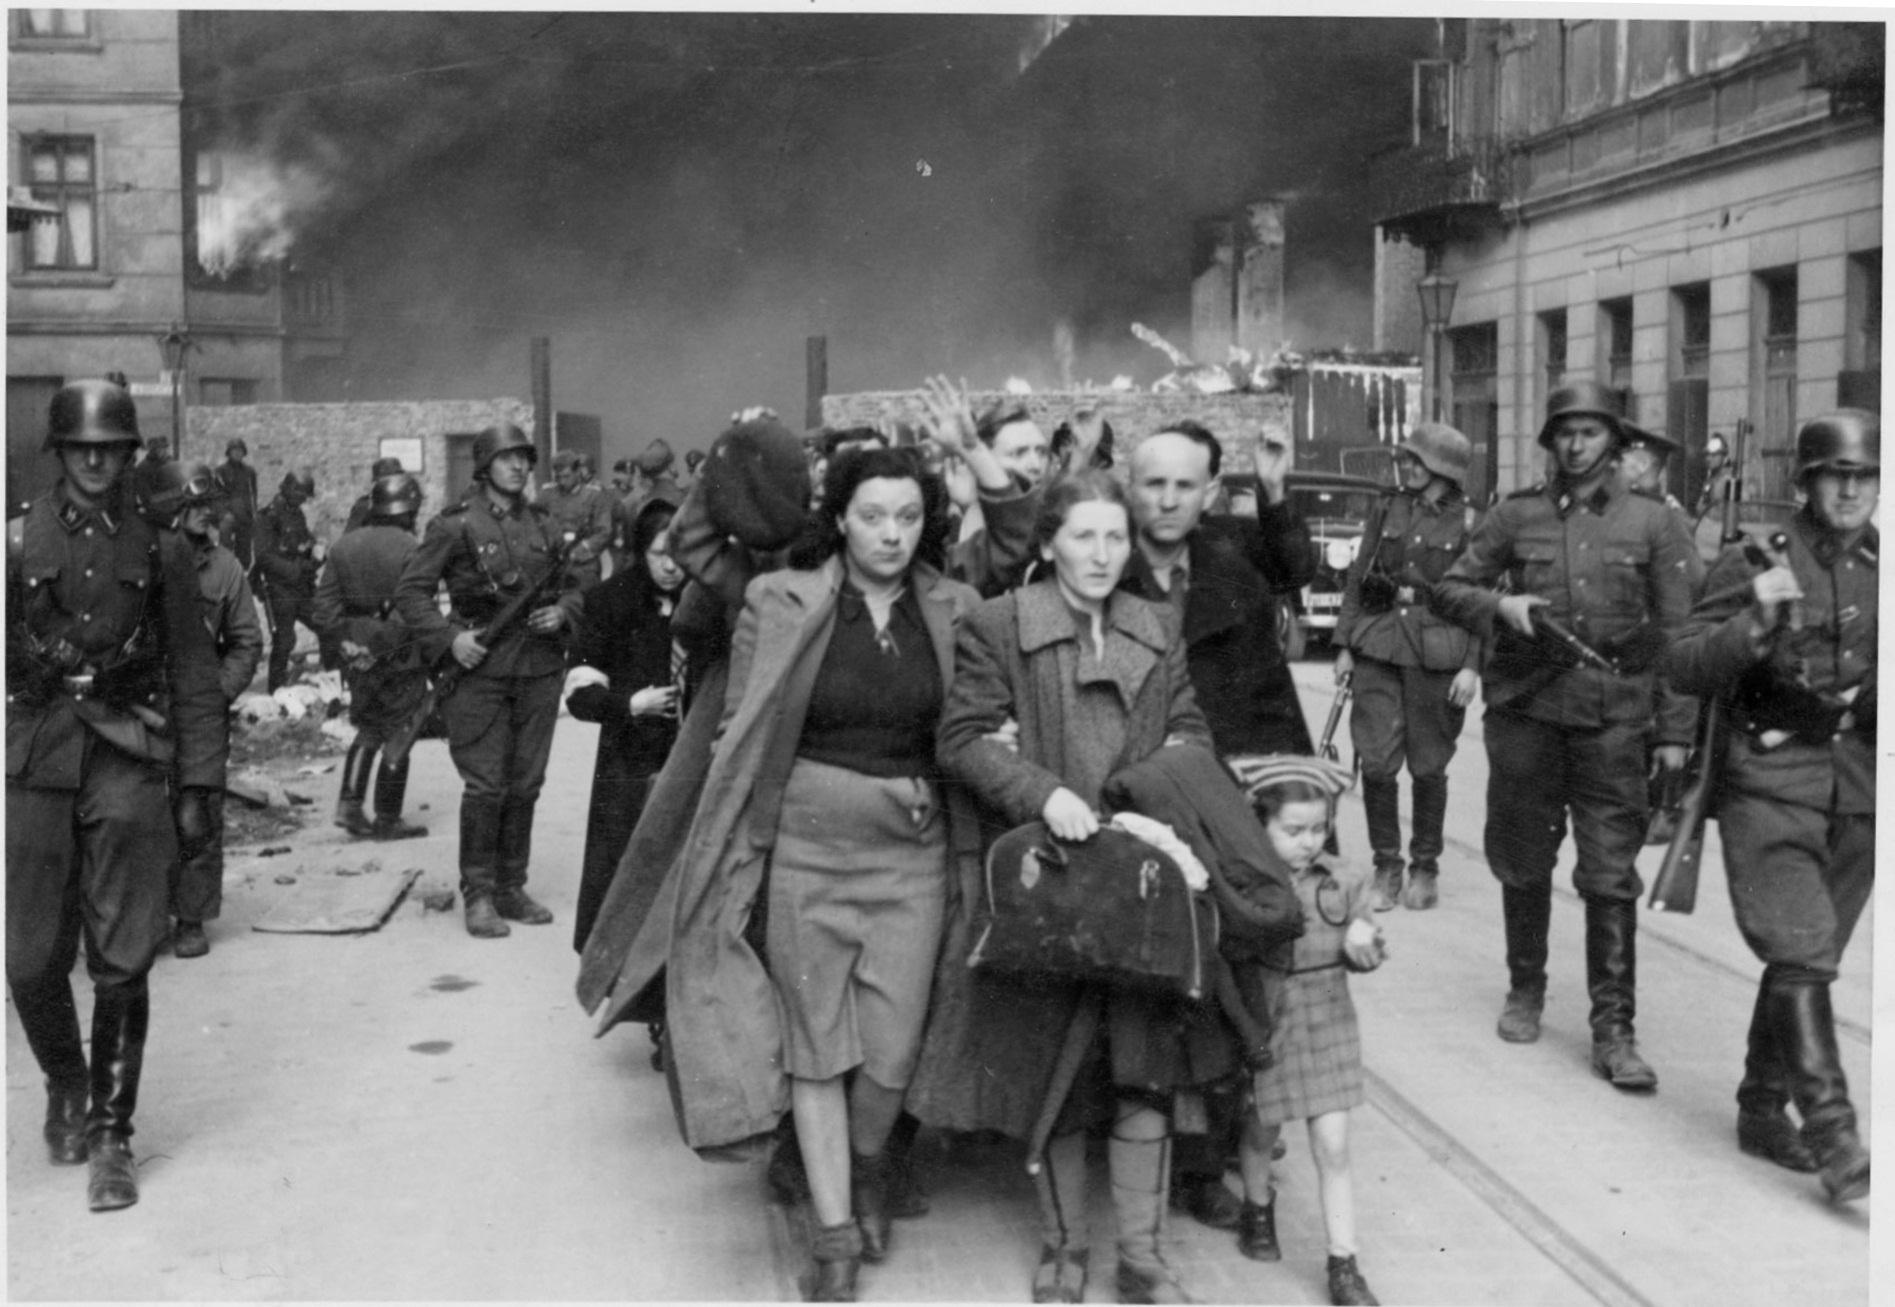 File:Stroop Report - Warsaw Ghetto Uprising 10.jpg